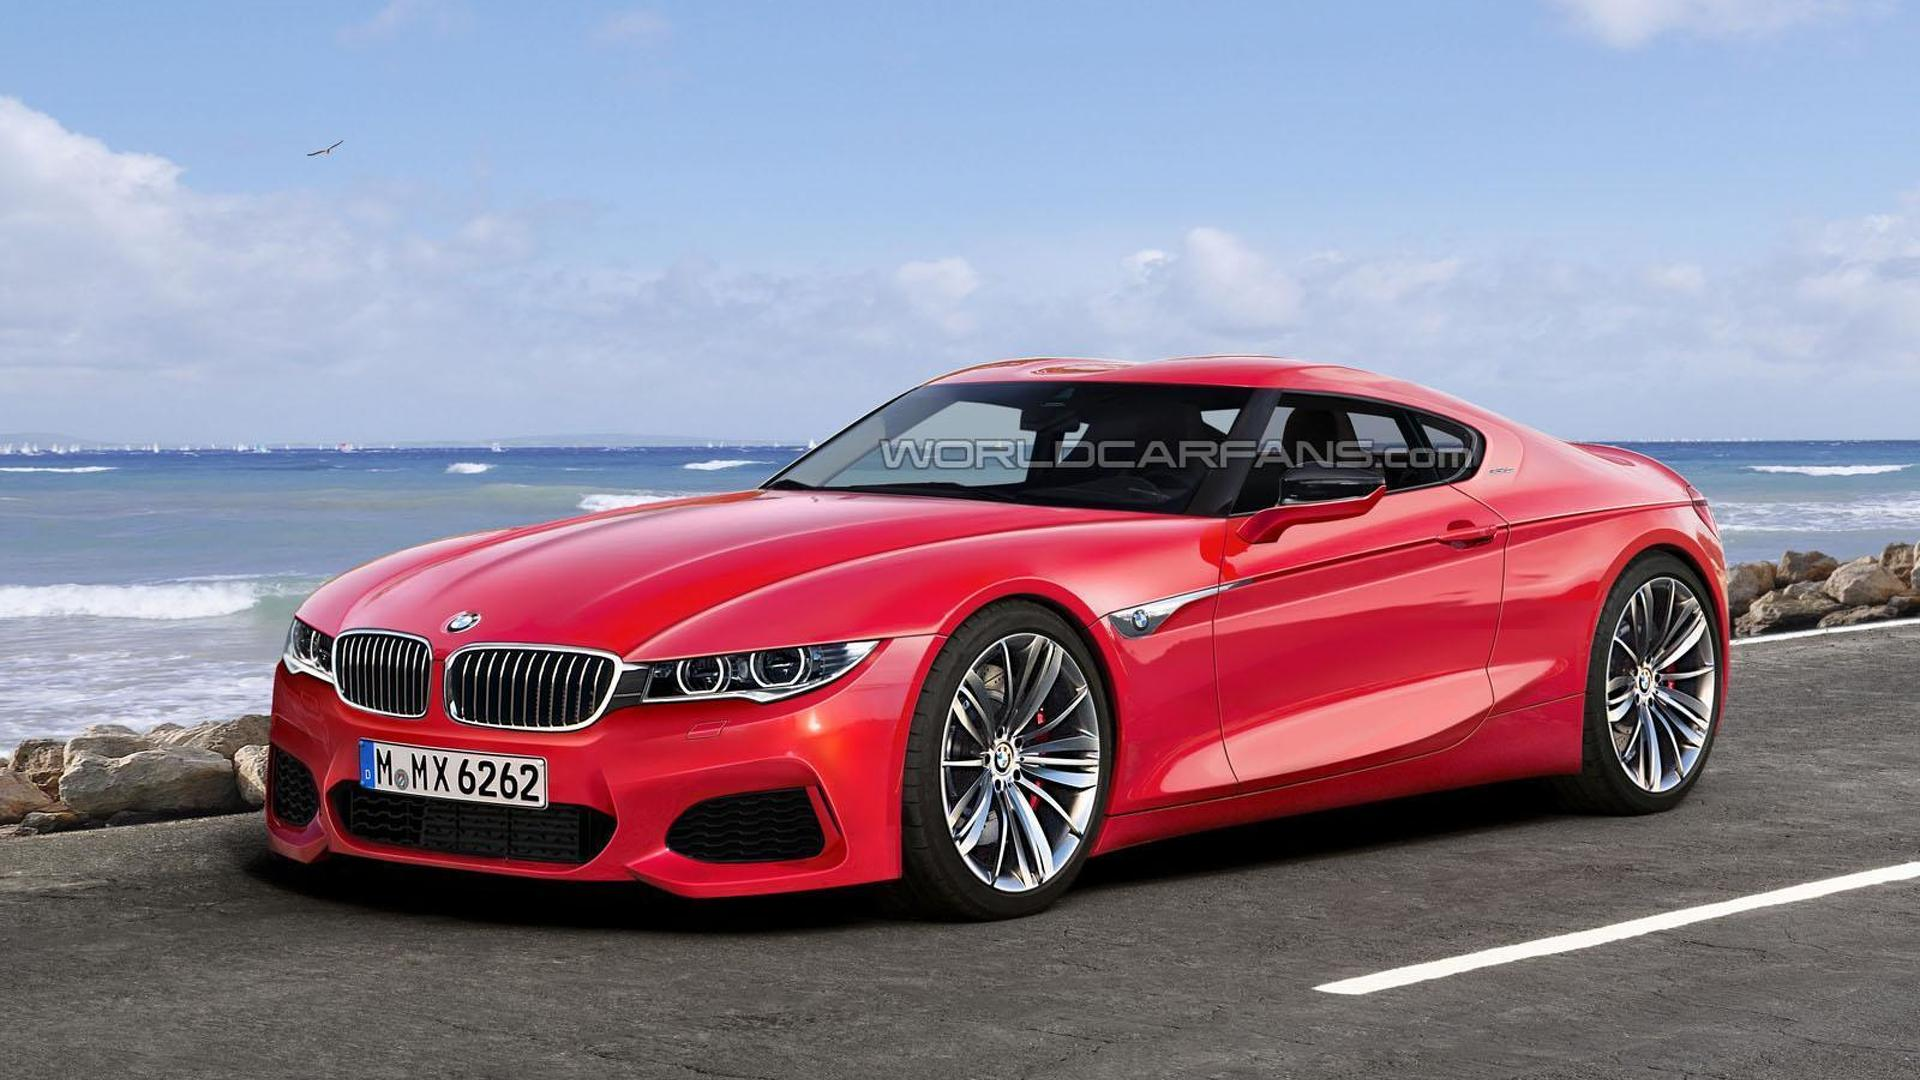 Captivating BMW Toyota Sports Car Moves To The Concept Phase, Model Still On Schedule